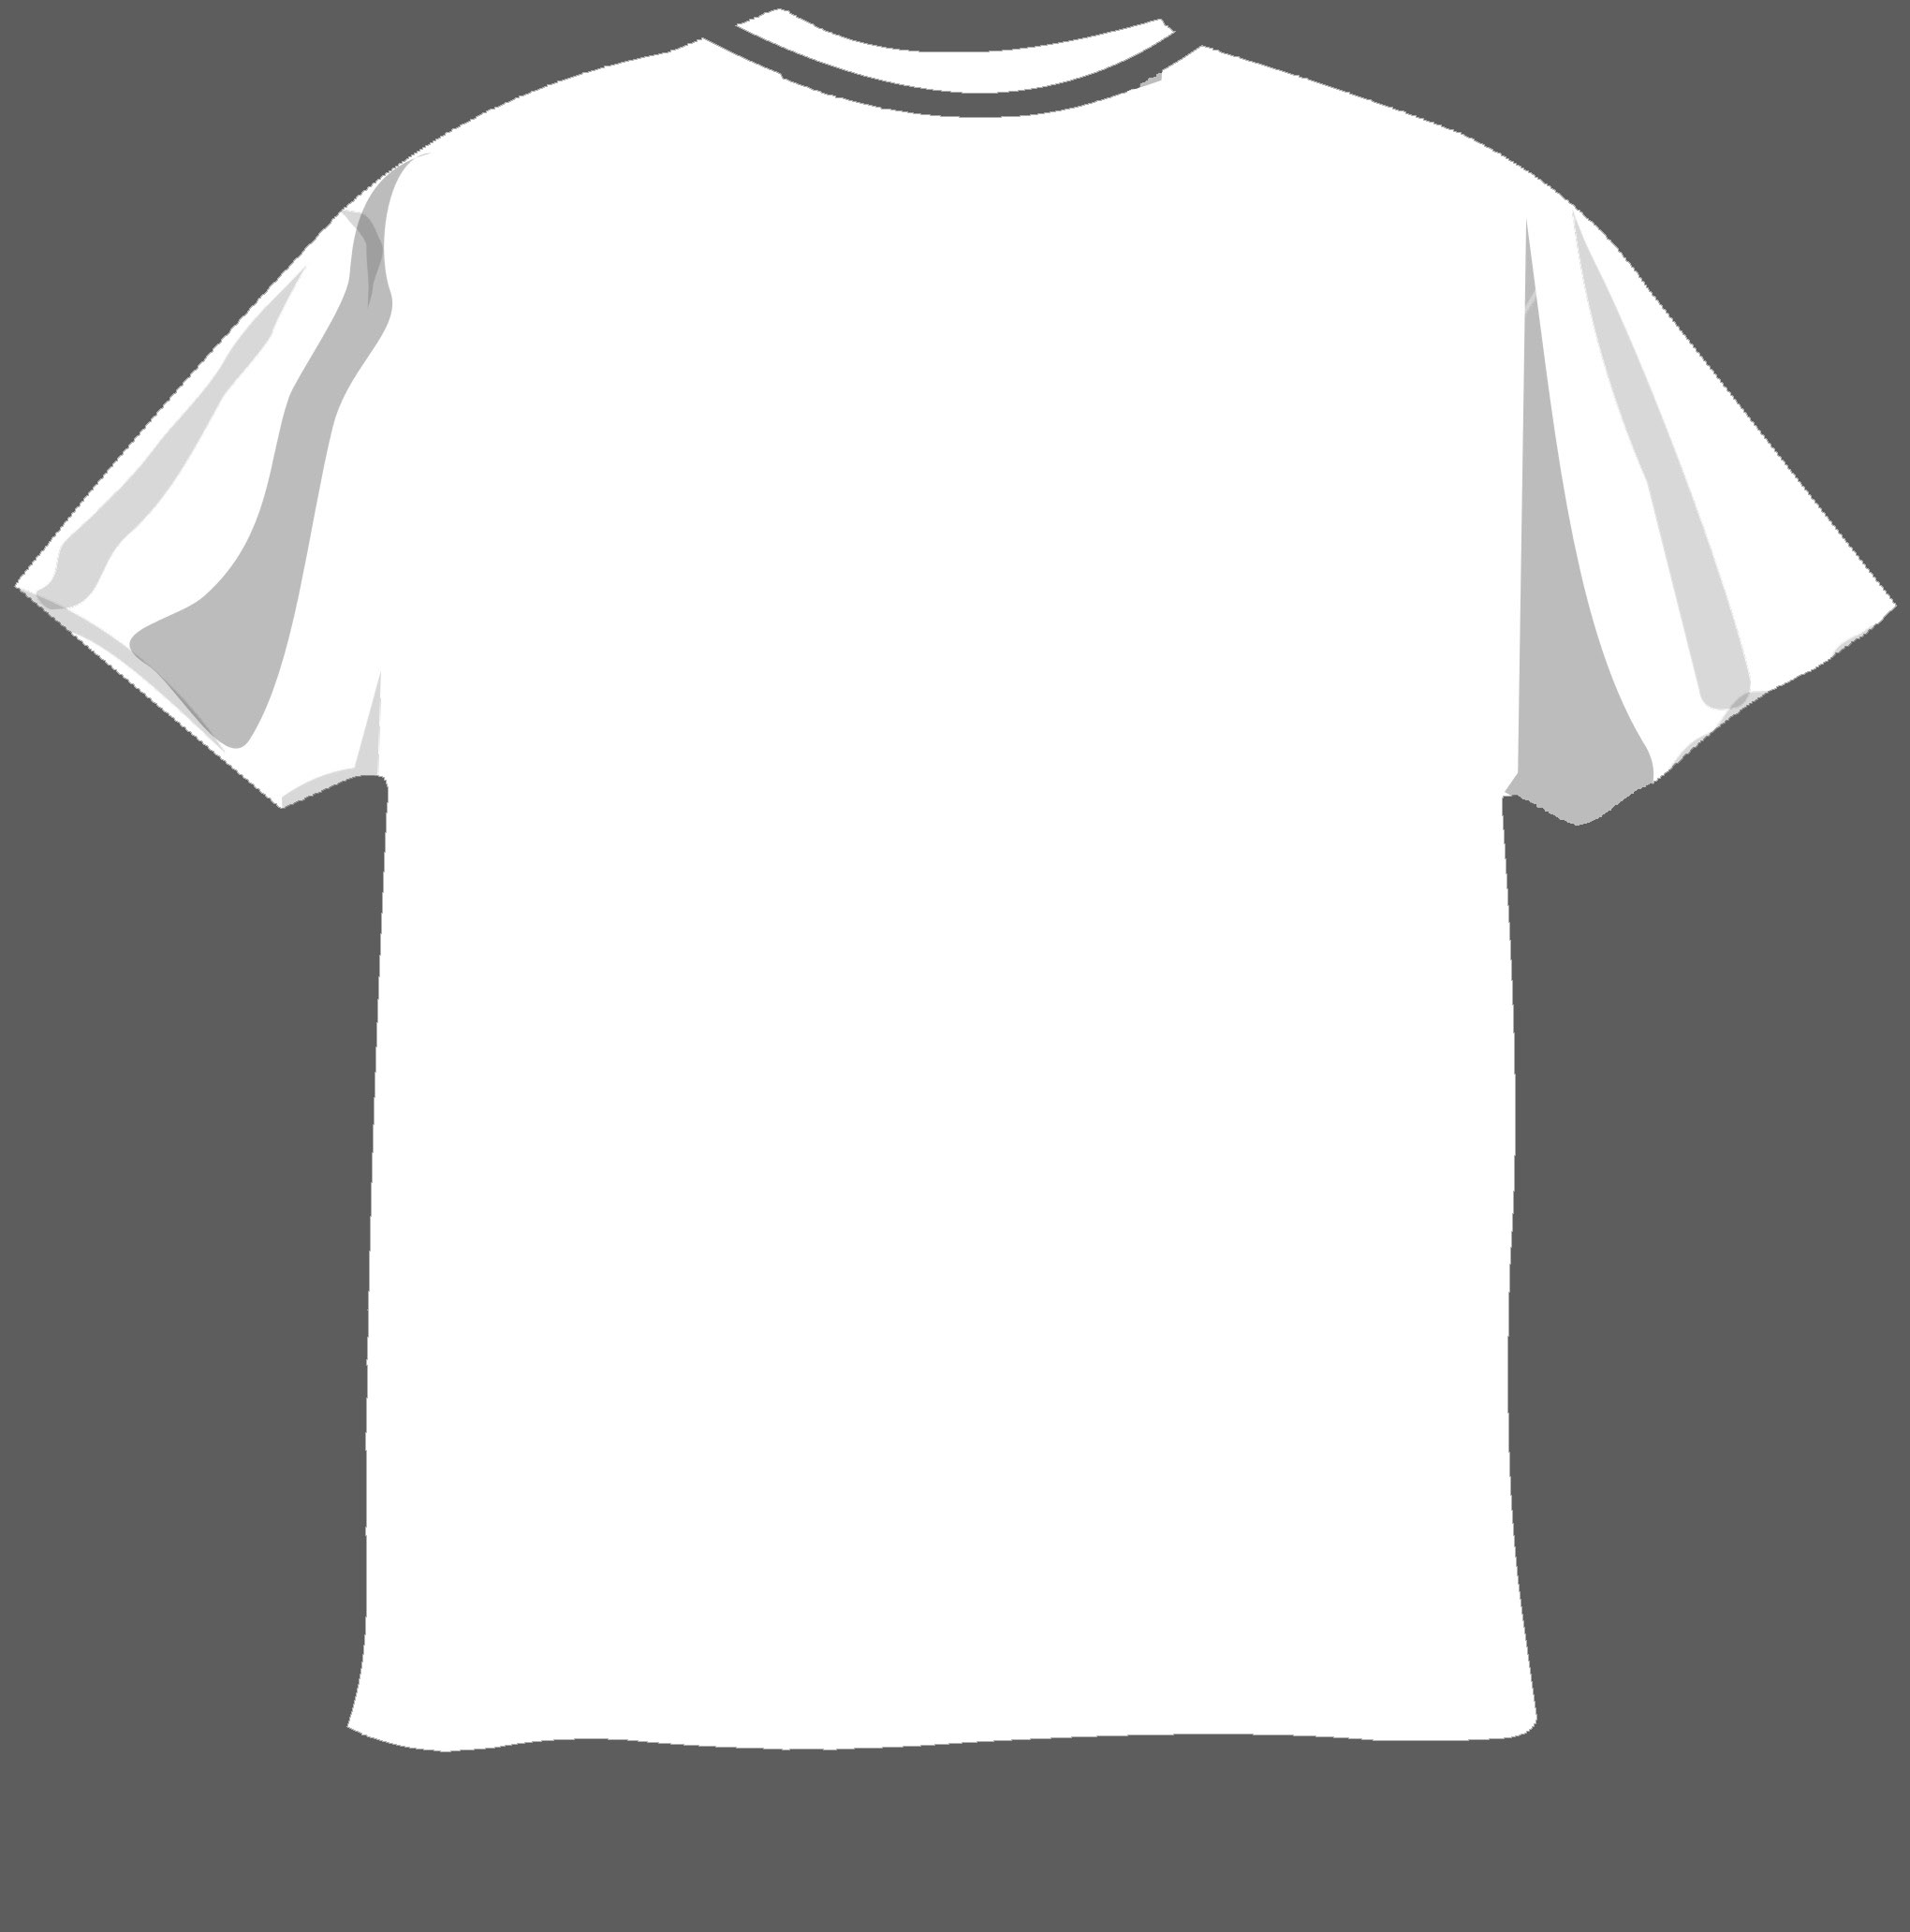 15 Tee Shirt Template For Photoshop Images